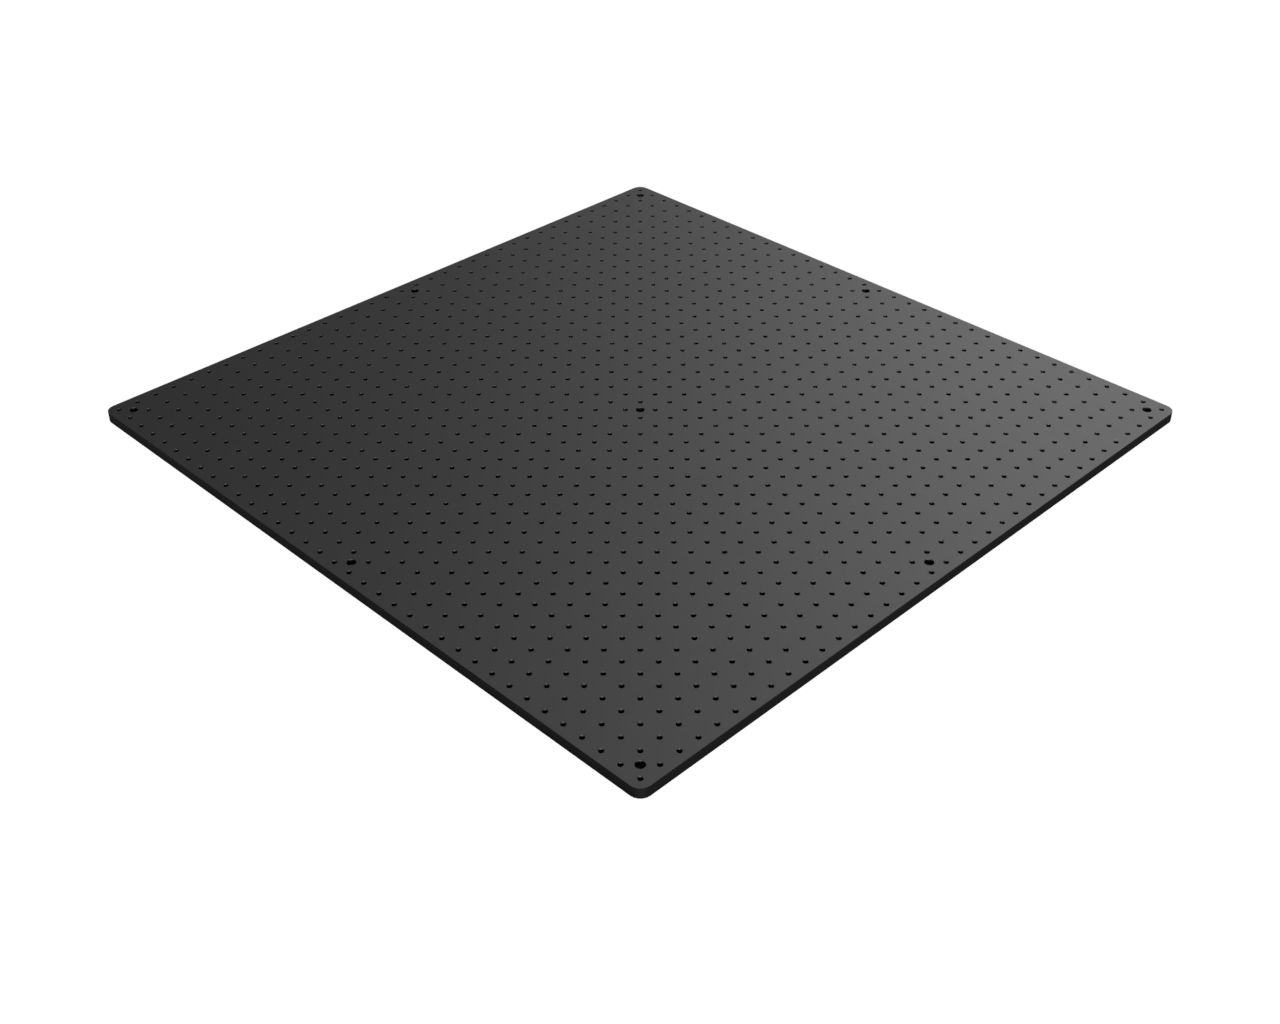 Sab363 36 In X 36 In X 1 2 In Solid Aluminum Optical